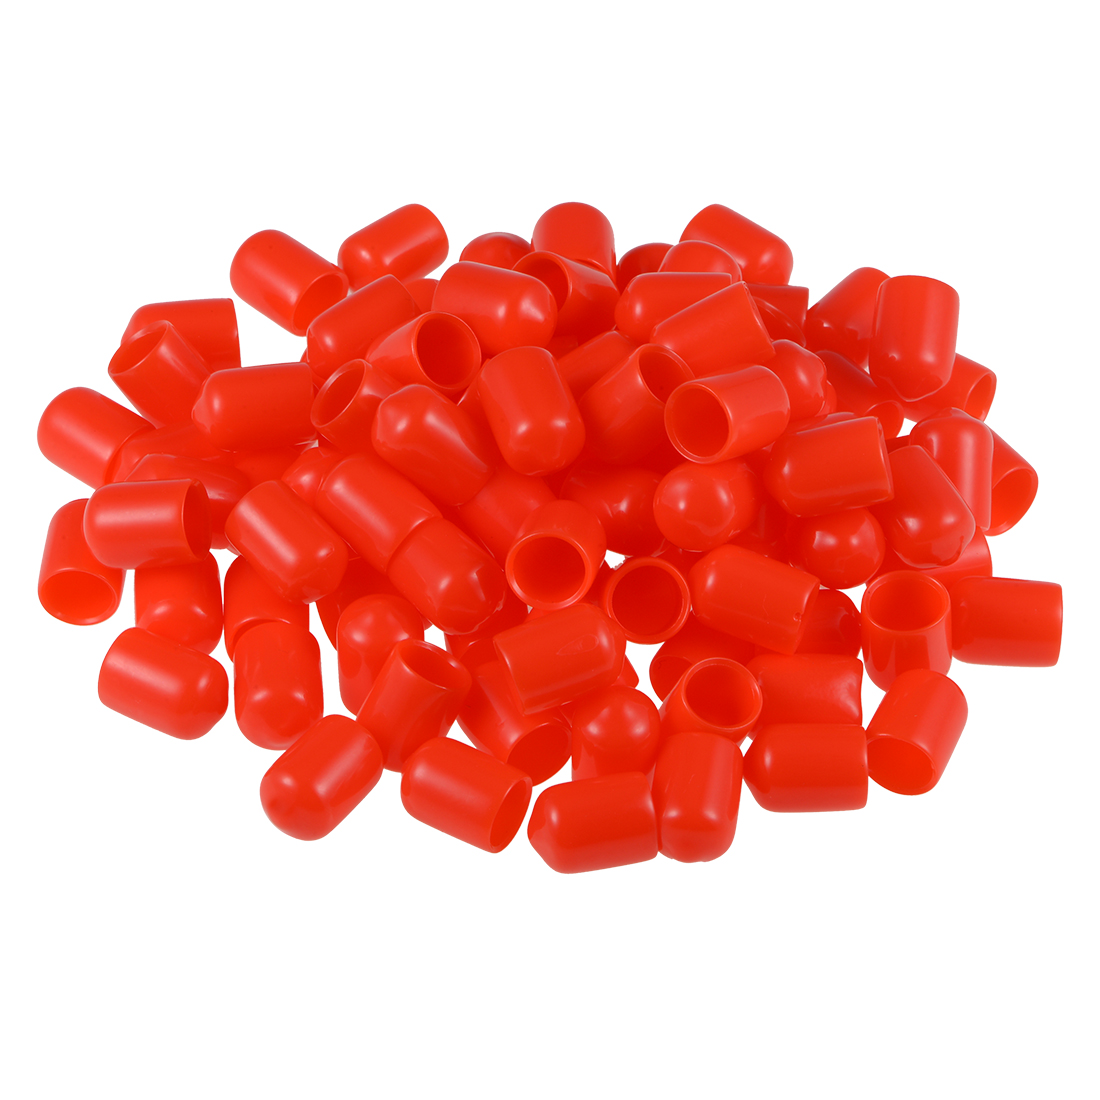 "Screw Thread Protectors, 3/8"" ID 15mm Length Round End Cap Cover Red 100pcs"